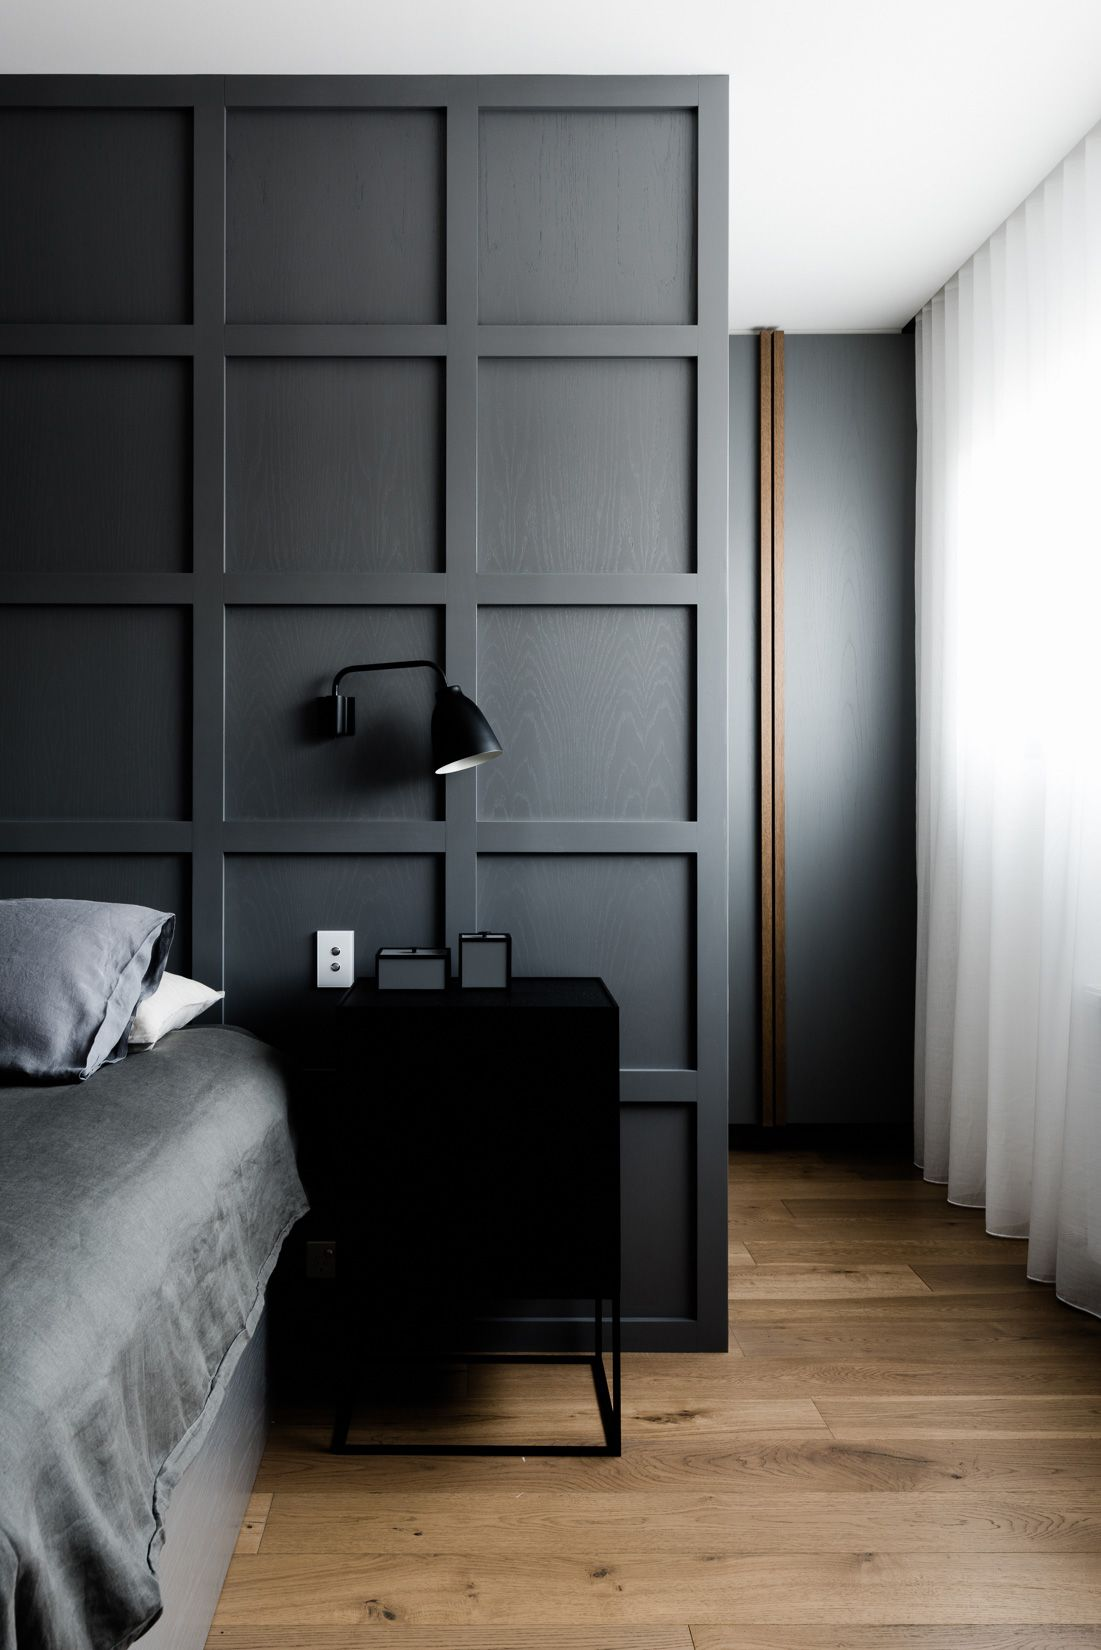 8 Best Panel Curtains Images On Pinterest: Interview: Nick Harding Of Ha Architecture